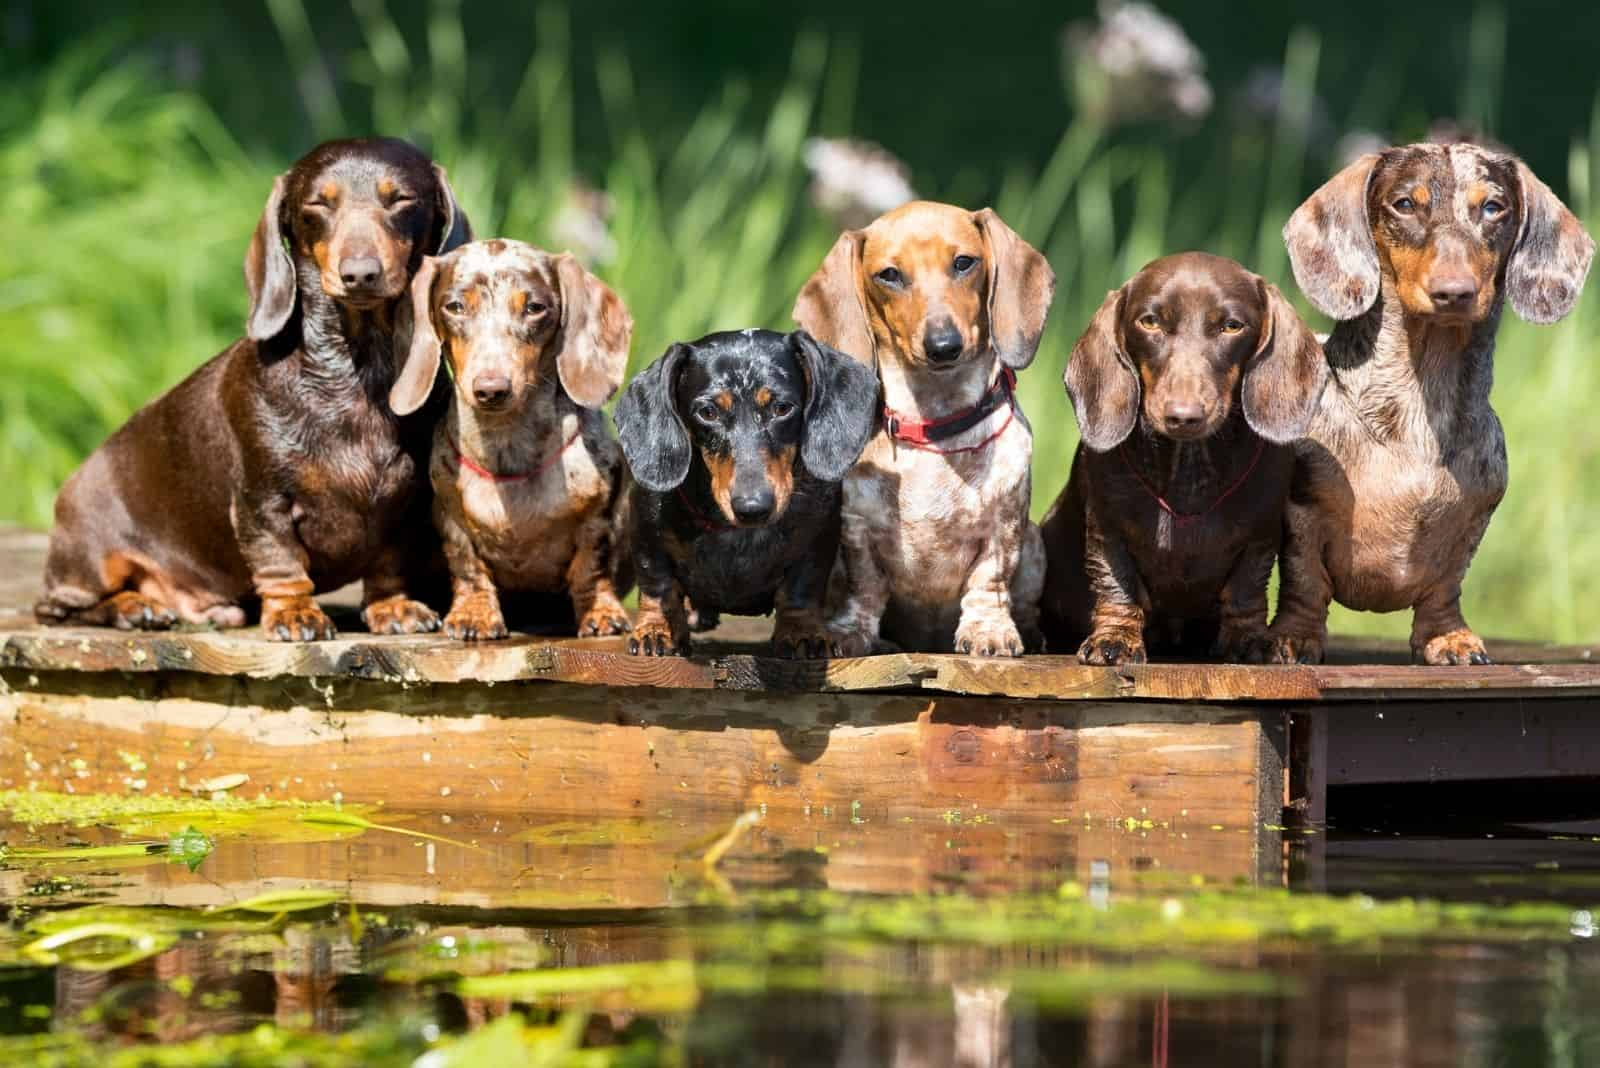 group dog dachshund sits by wooden platform near the water